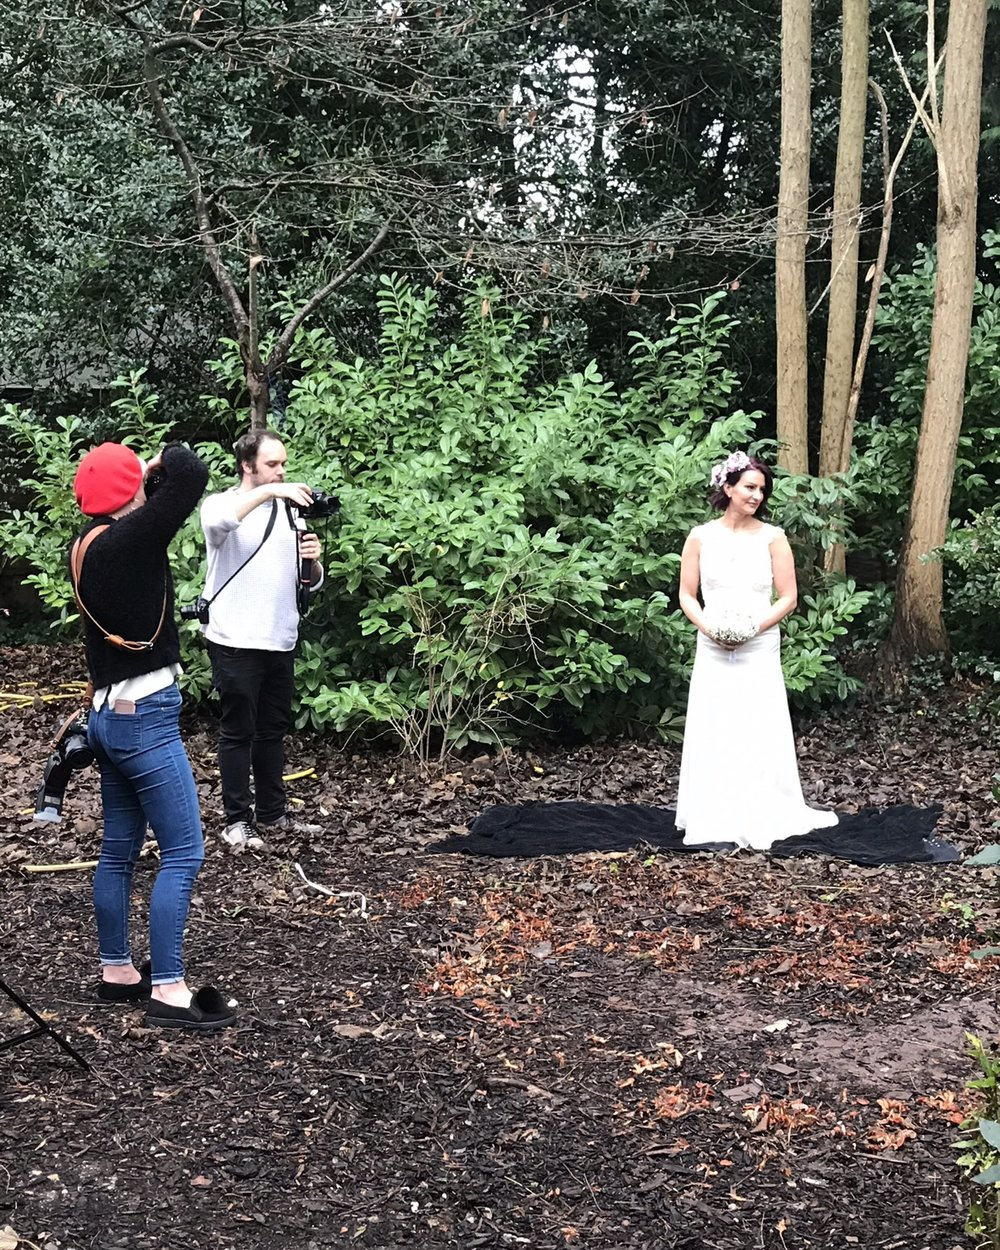 Videographer by Colin D Miller, Photography by Jess Door at J'Door Photography